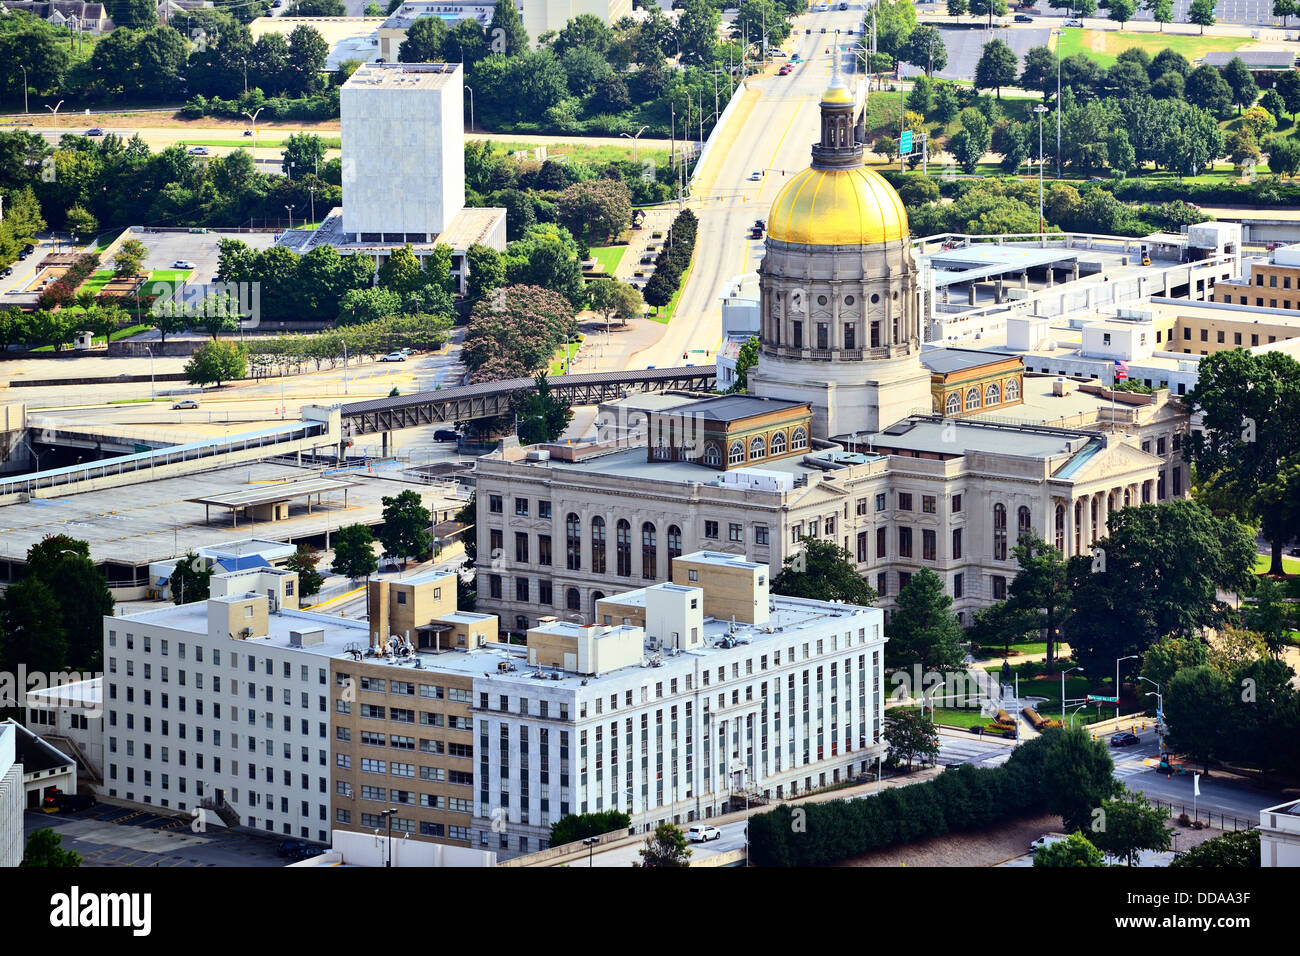 Georgia State Capitol Building in Atlanta, Georgia, USA. Stockbild